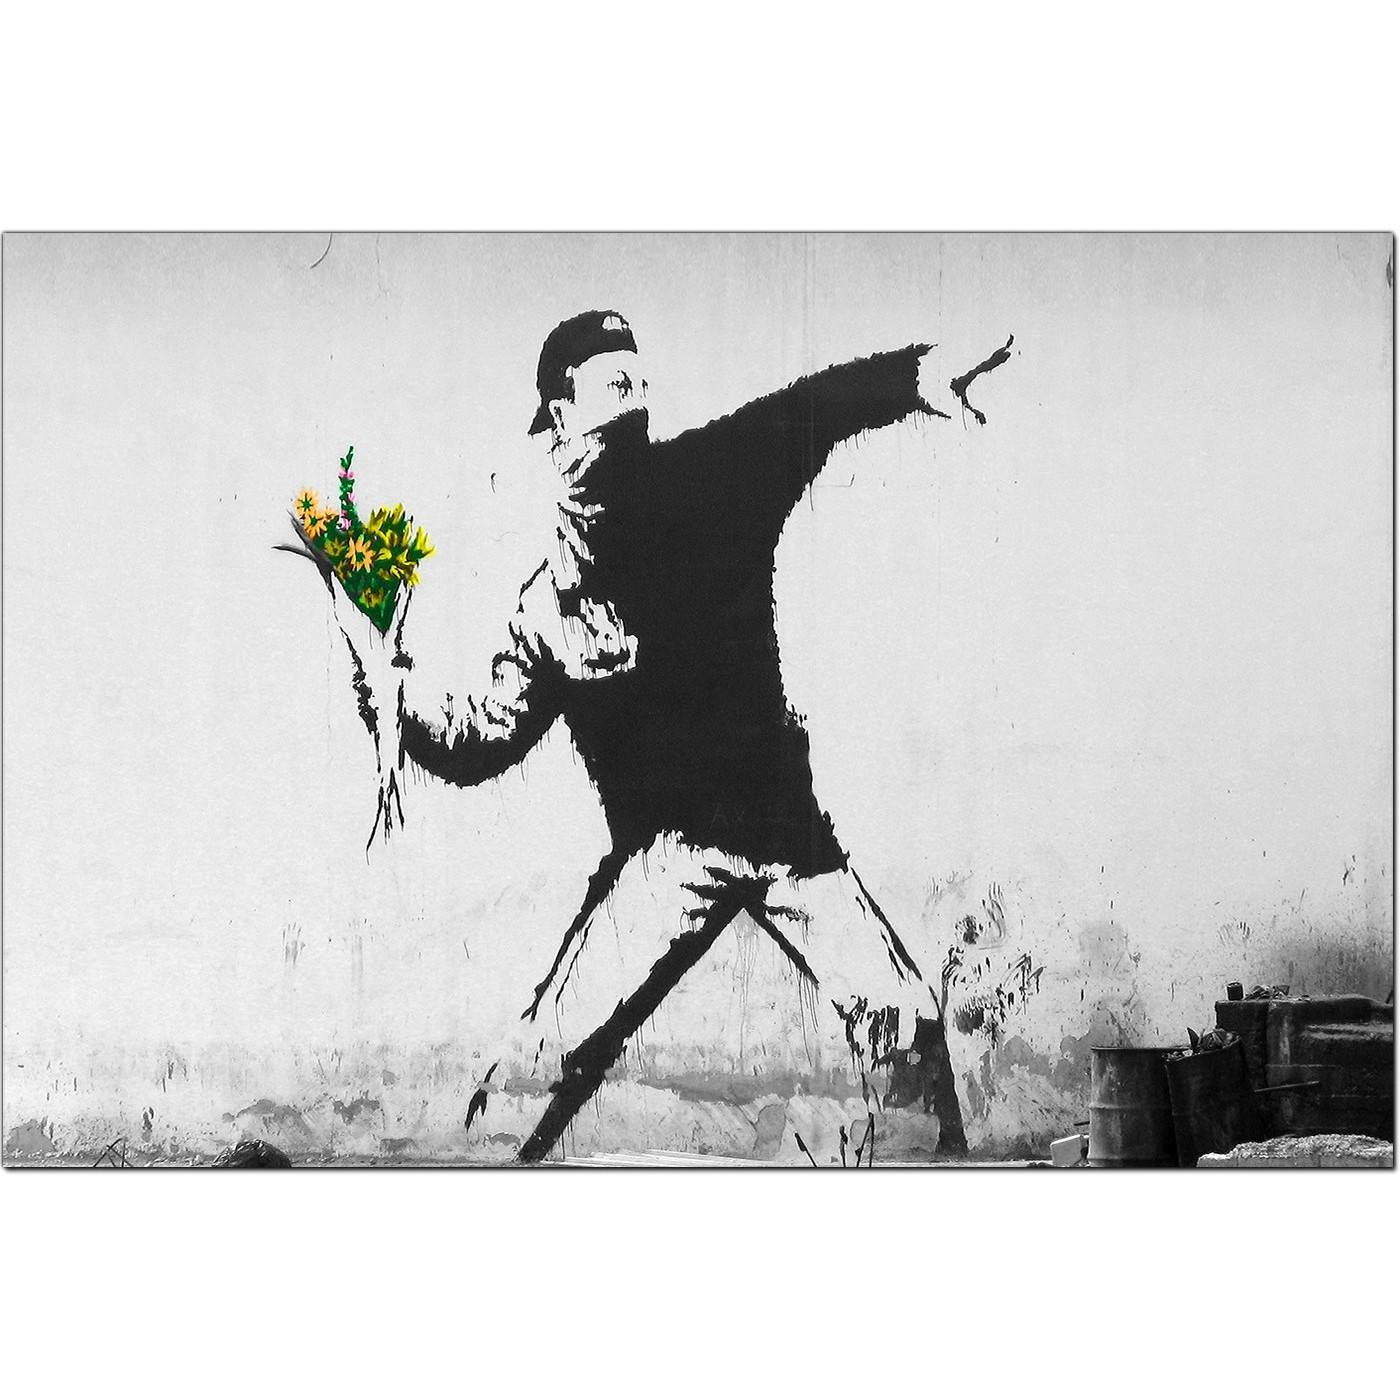 Banksy Canvas Prints – Flower Thrower Intended For Current Banksy Canvas Wall Art (View 2 of 20)